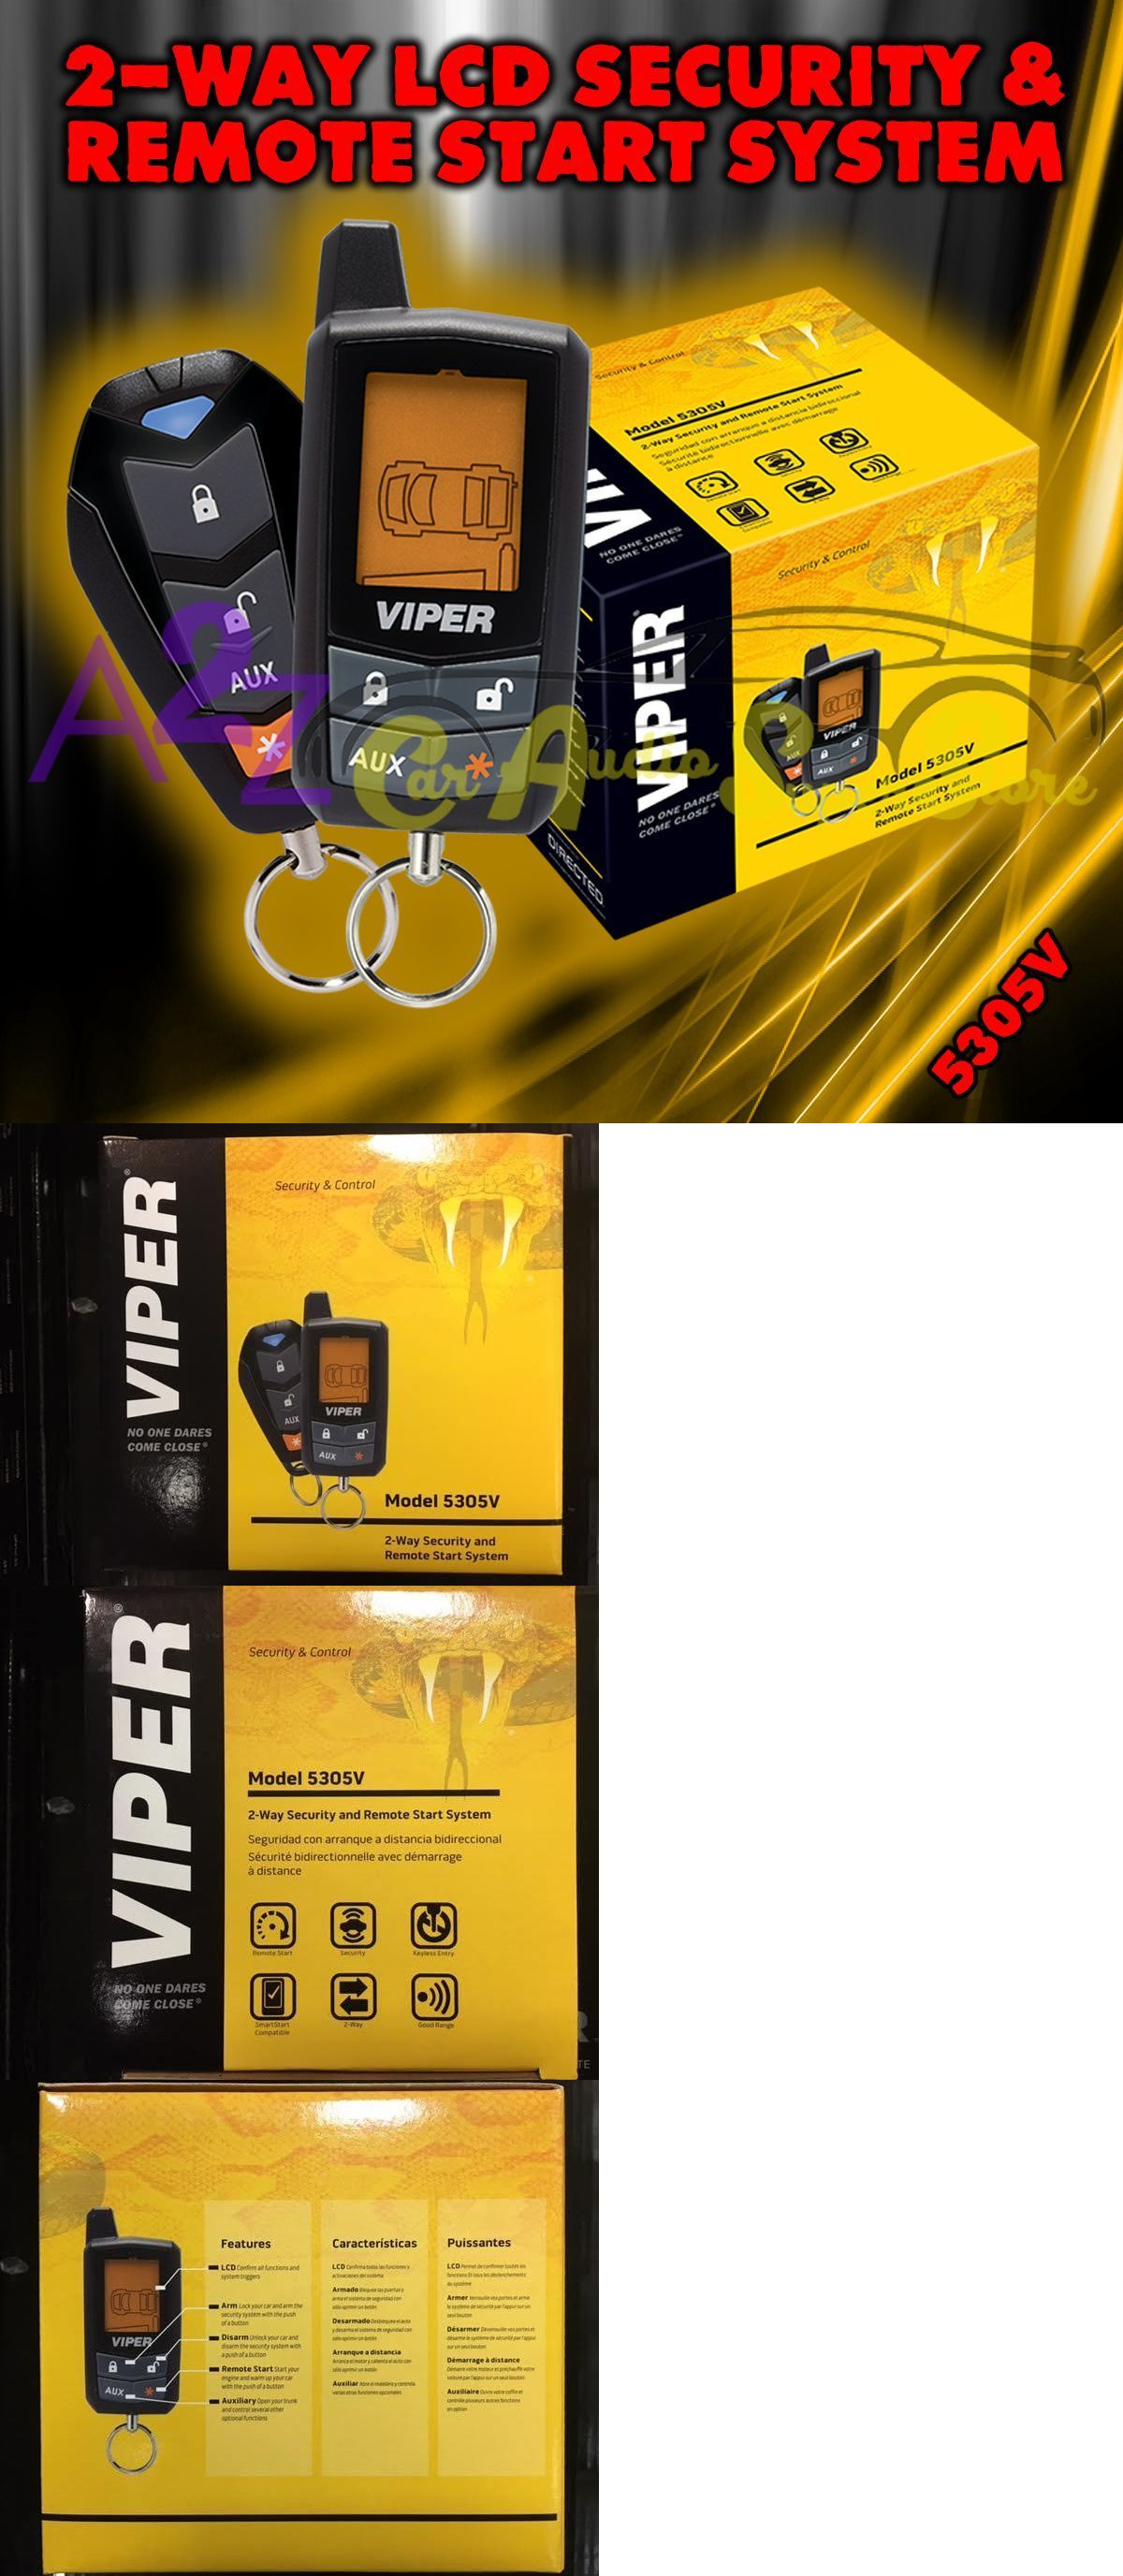 viper 5305v car alarm router wiring diagram alarms and security systems 2 way lcd vehicle keyless entry